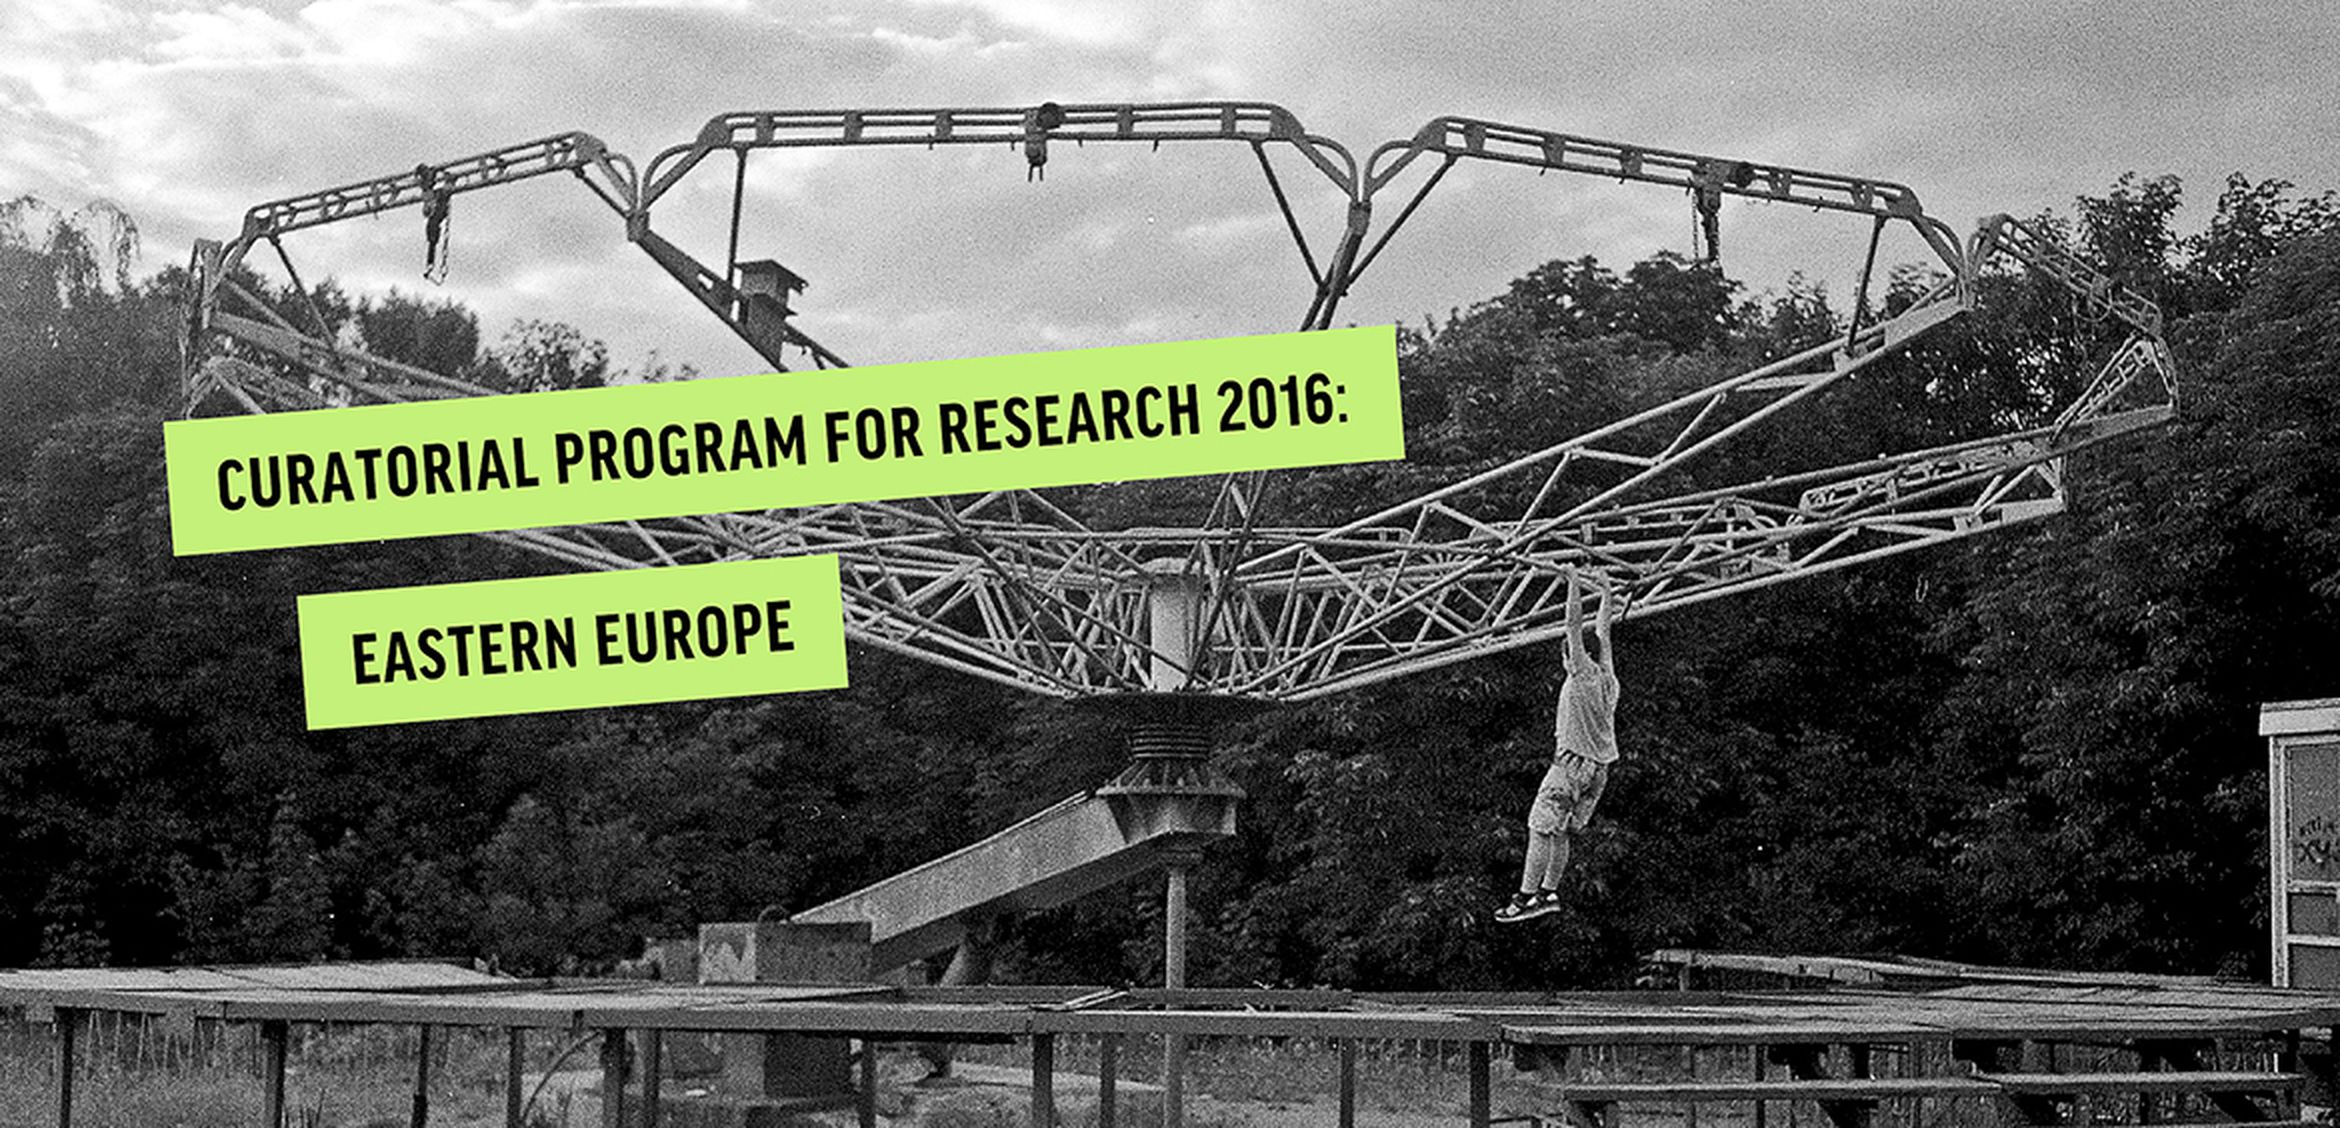 Curatorial Program for Research в ИЗОЛЯЦИИ